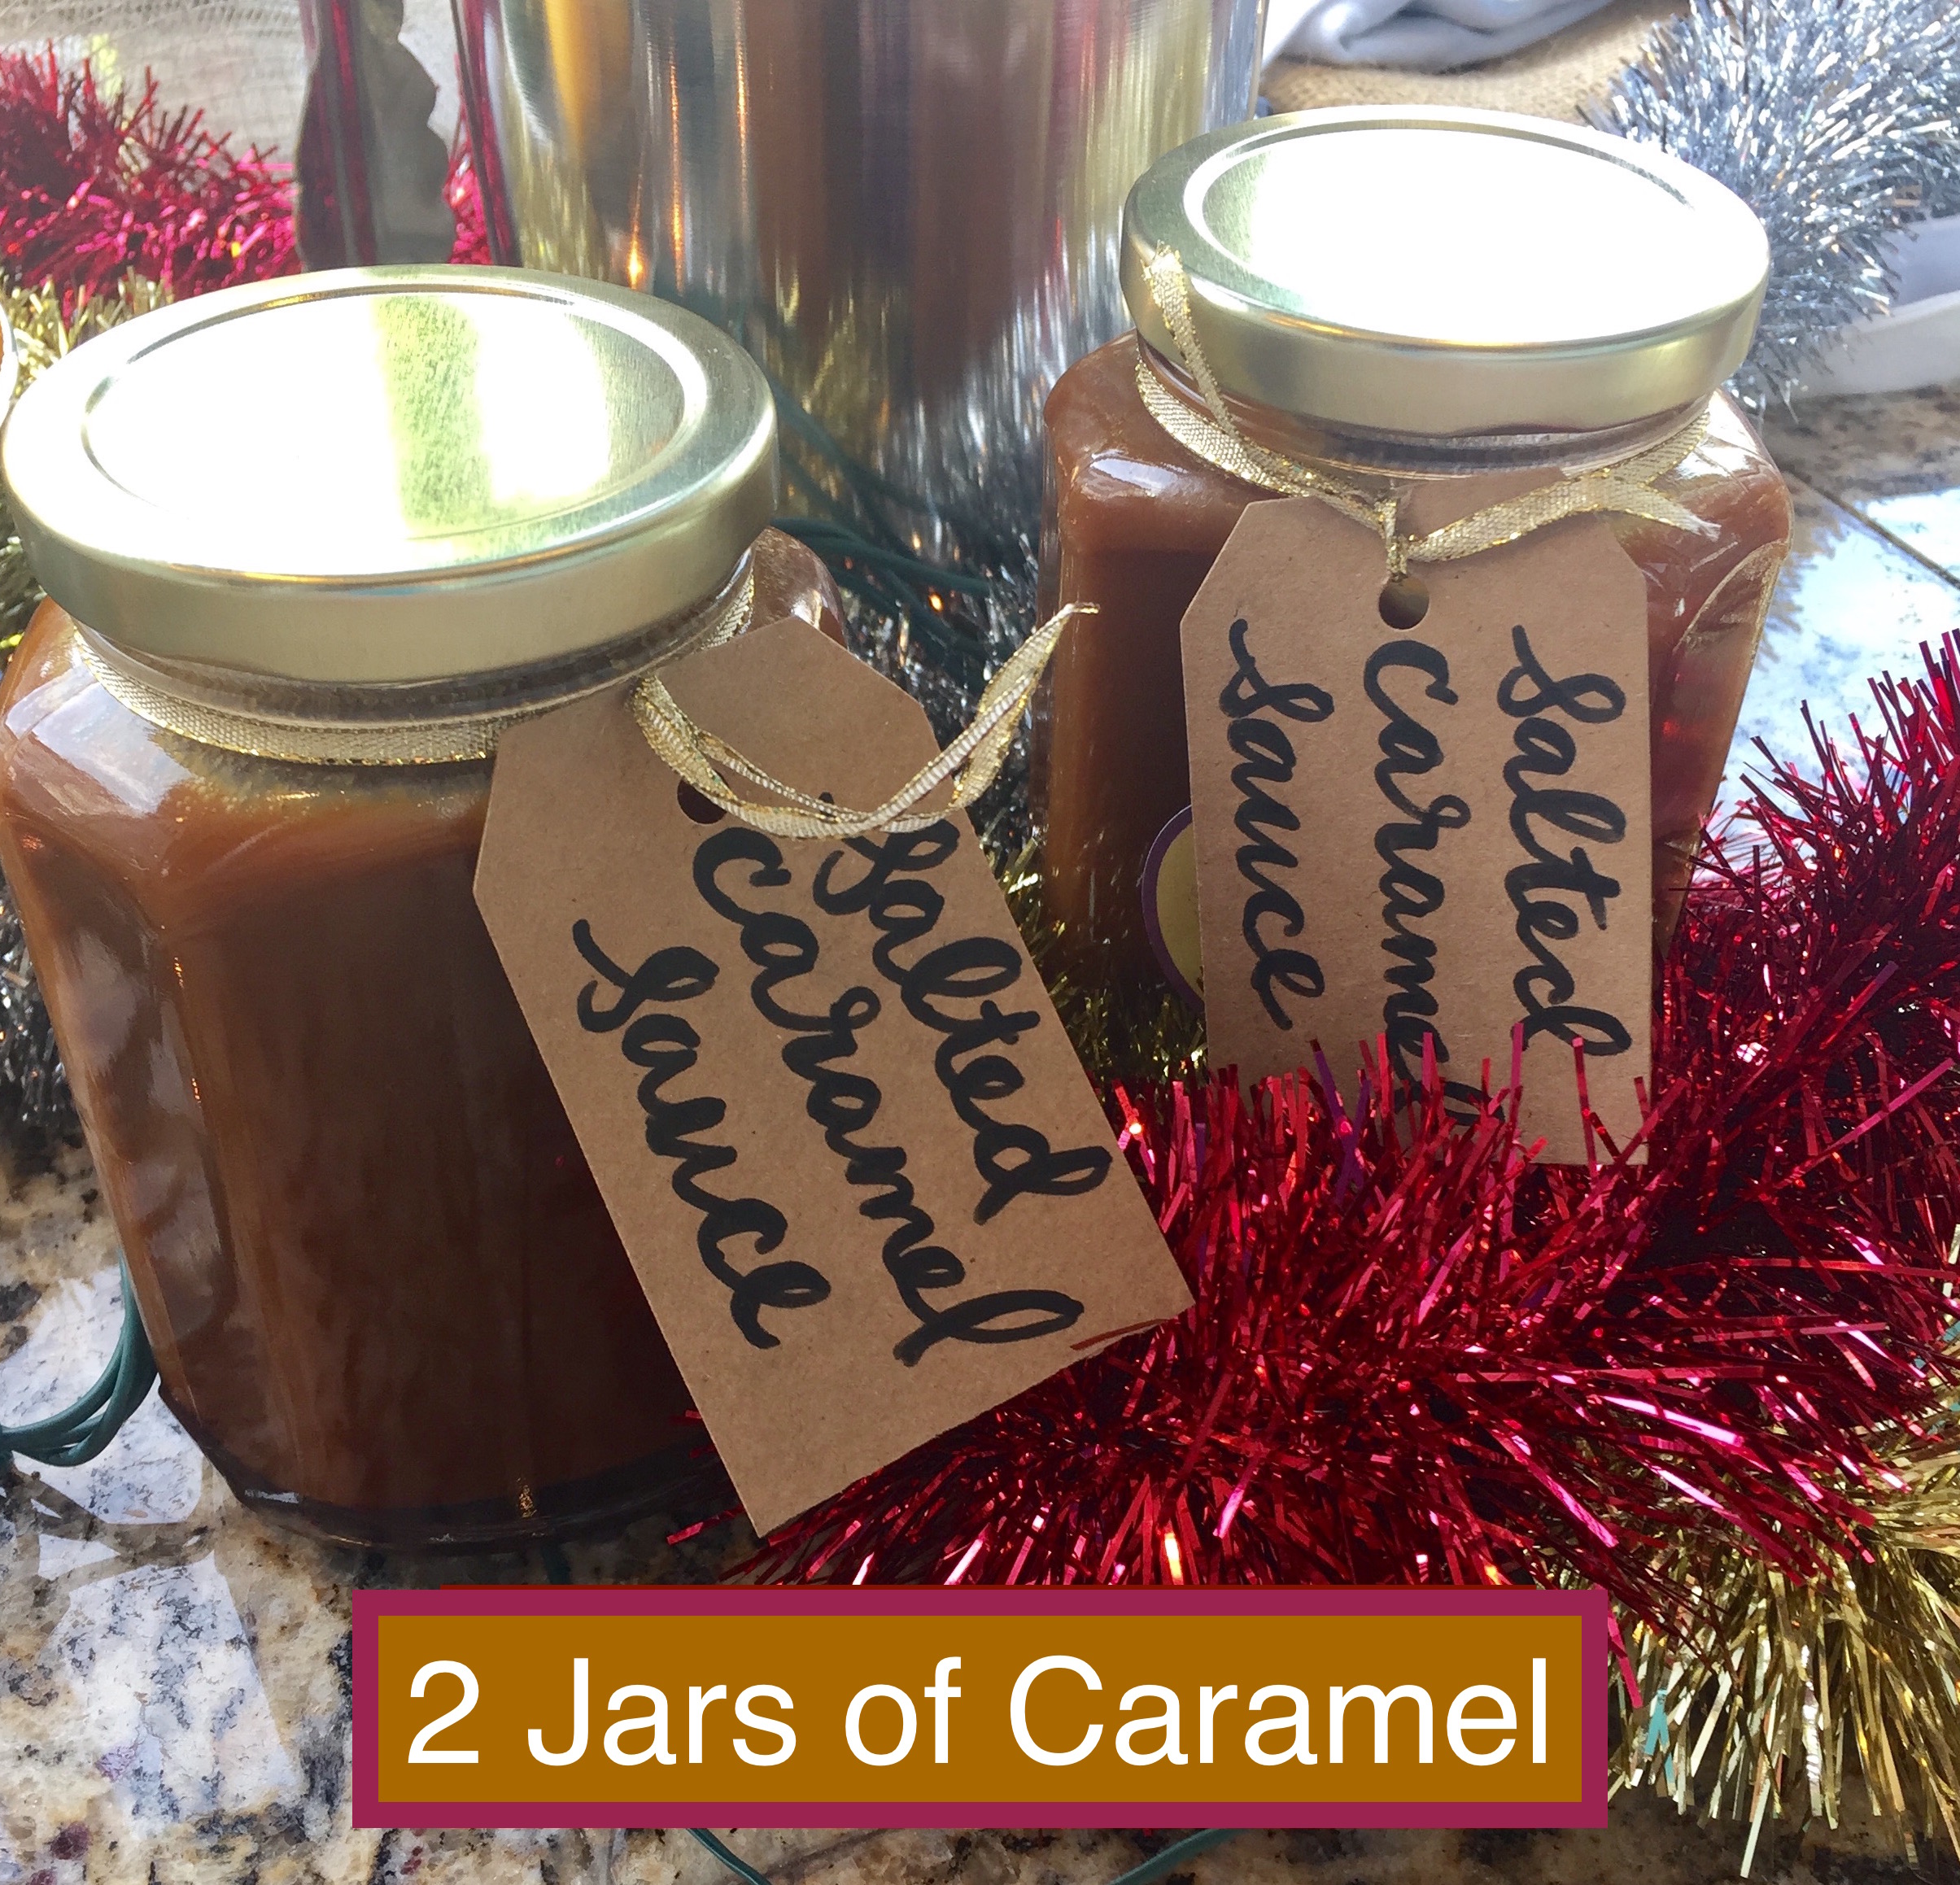 2 Jars of Caramel.jpg